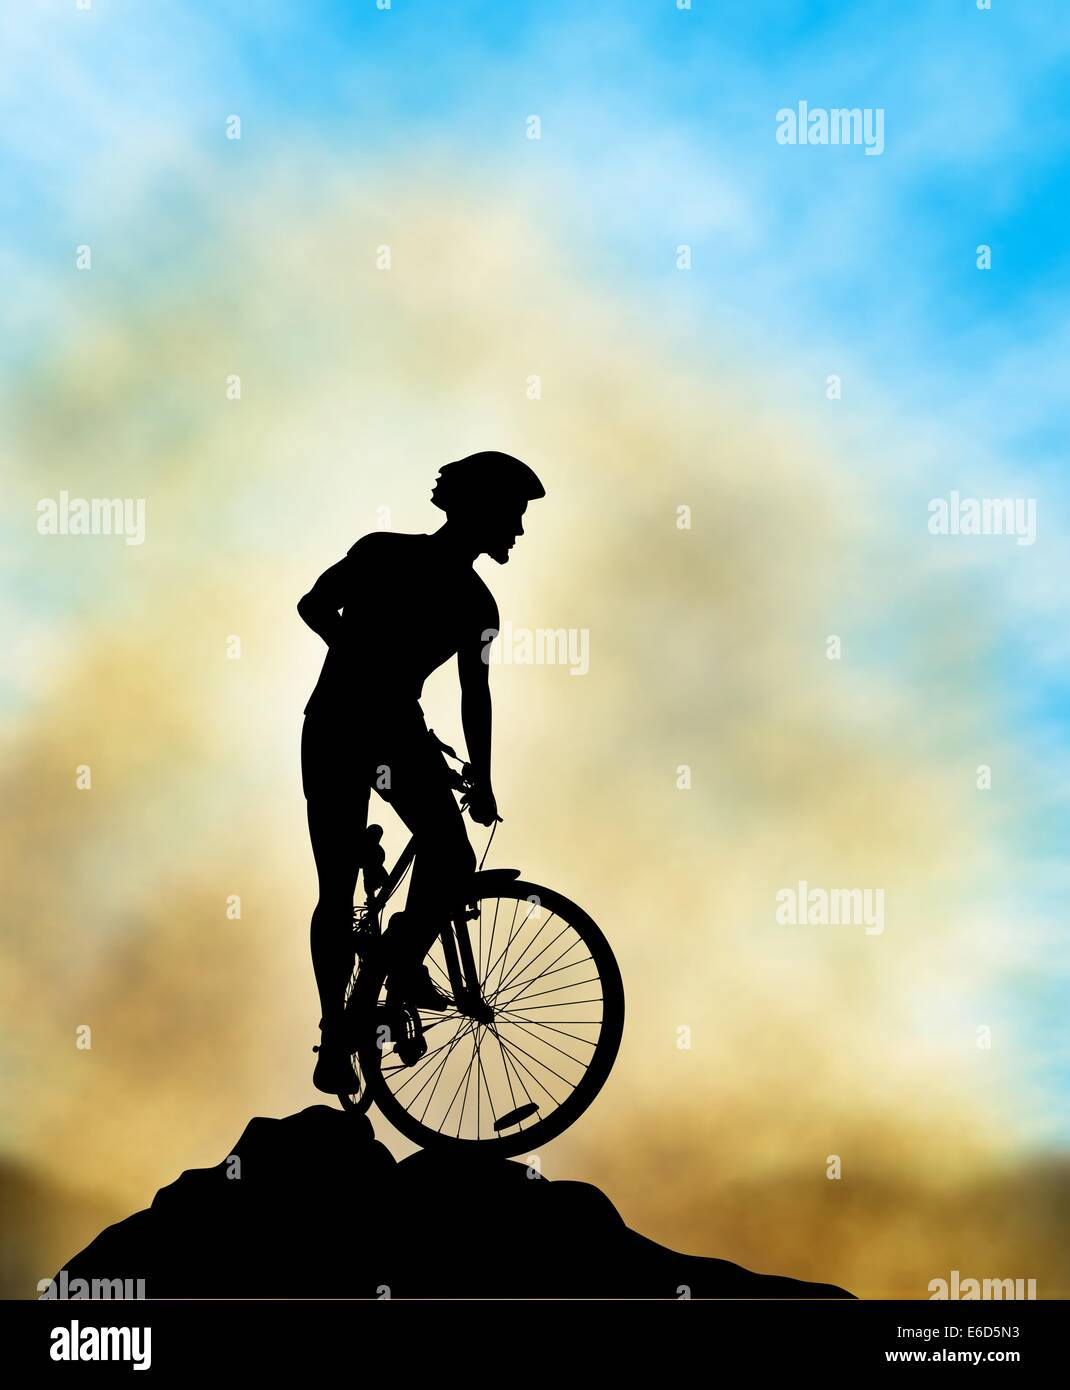 editable vector illustration of a mountain biker silhouette high on a ridge with background sky and mist made using a gradient m